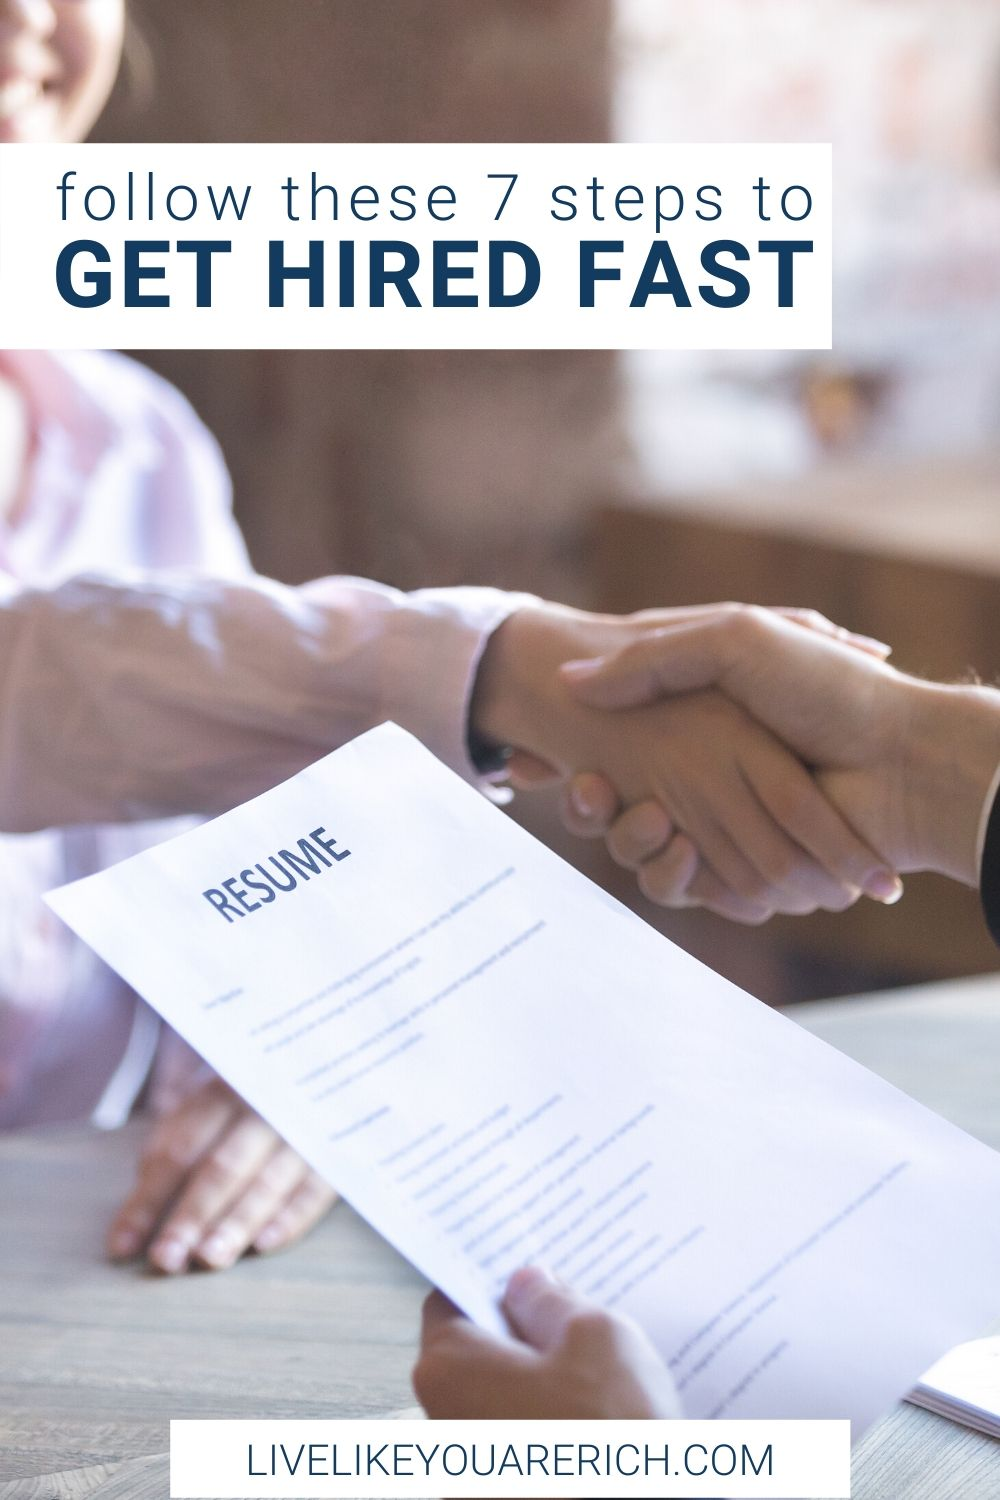 Before my son was born I was an office and hiring manager. Each time I advertised to hire some, I received over 100 resumes. I interviewed a lot of people. I've learned that there are things that can hinder your ability be hired. There are also ways to increase your changes of getting hired as well. Getting hired is a process but if you follow these top 7 steps you will get a job much quicker than if you don't.